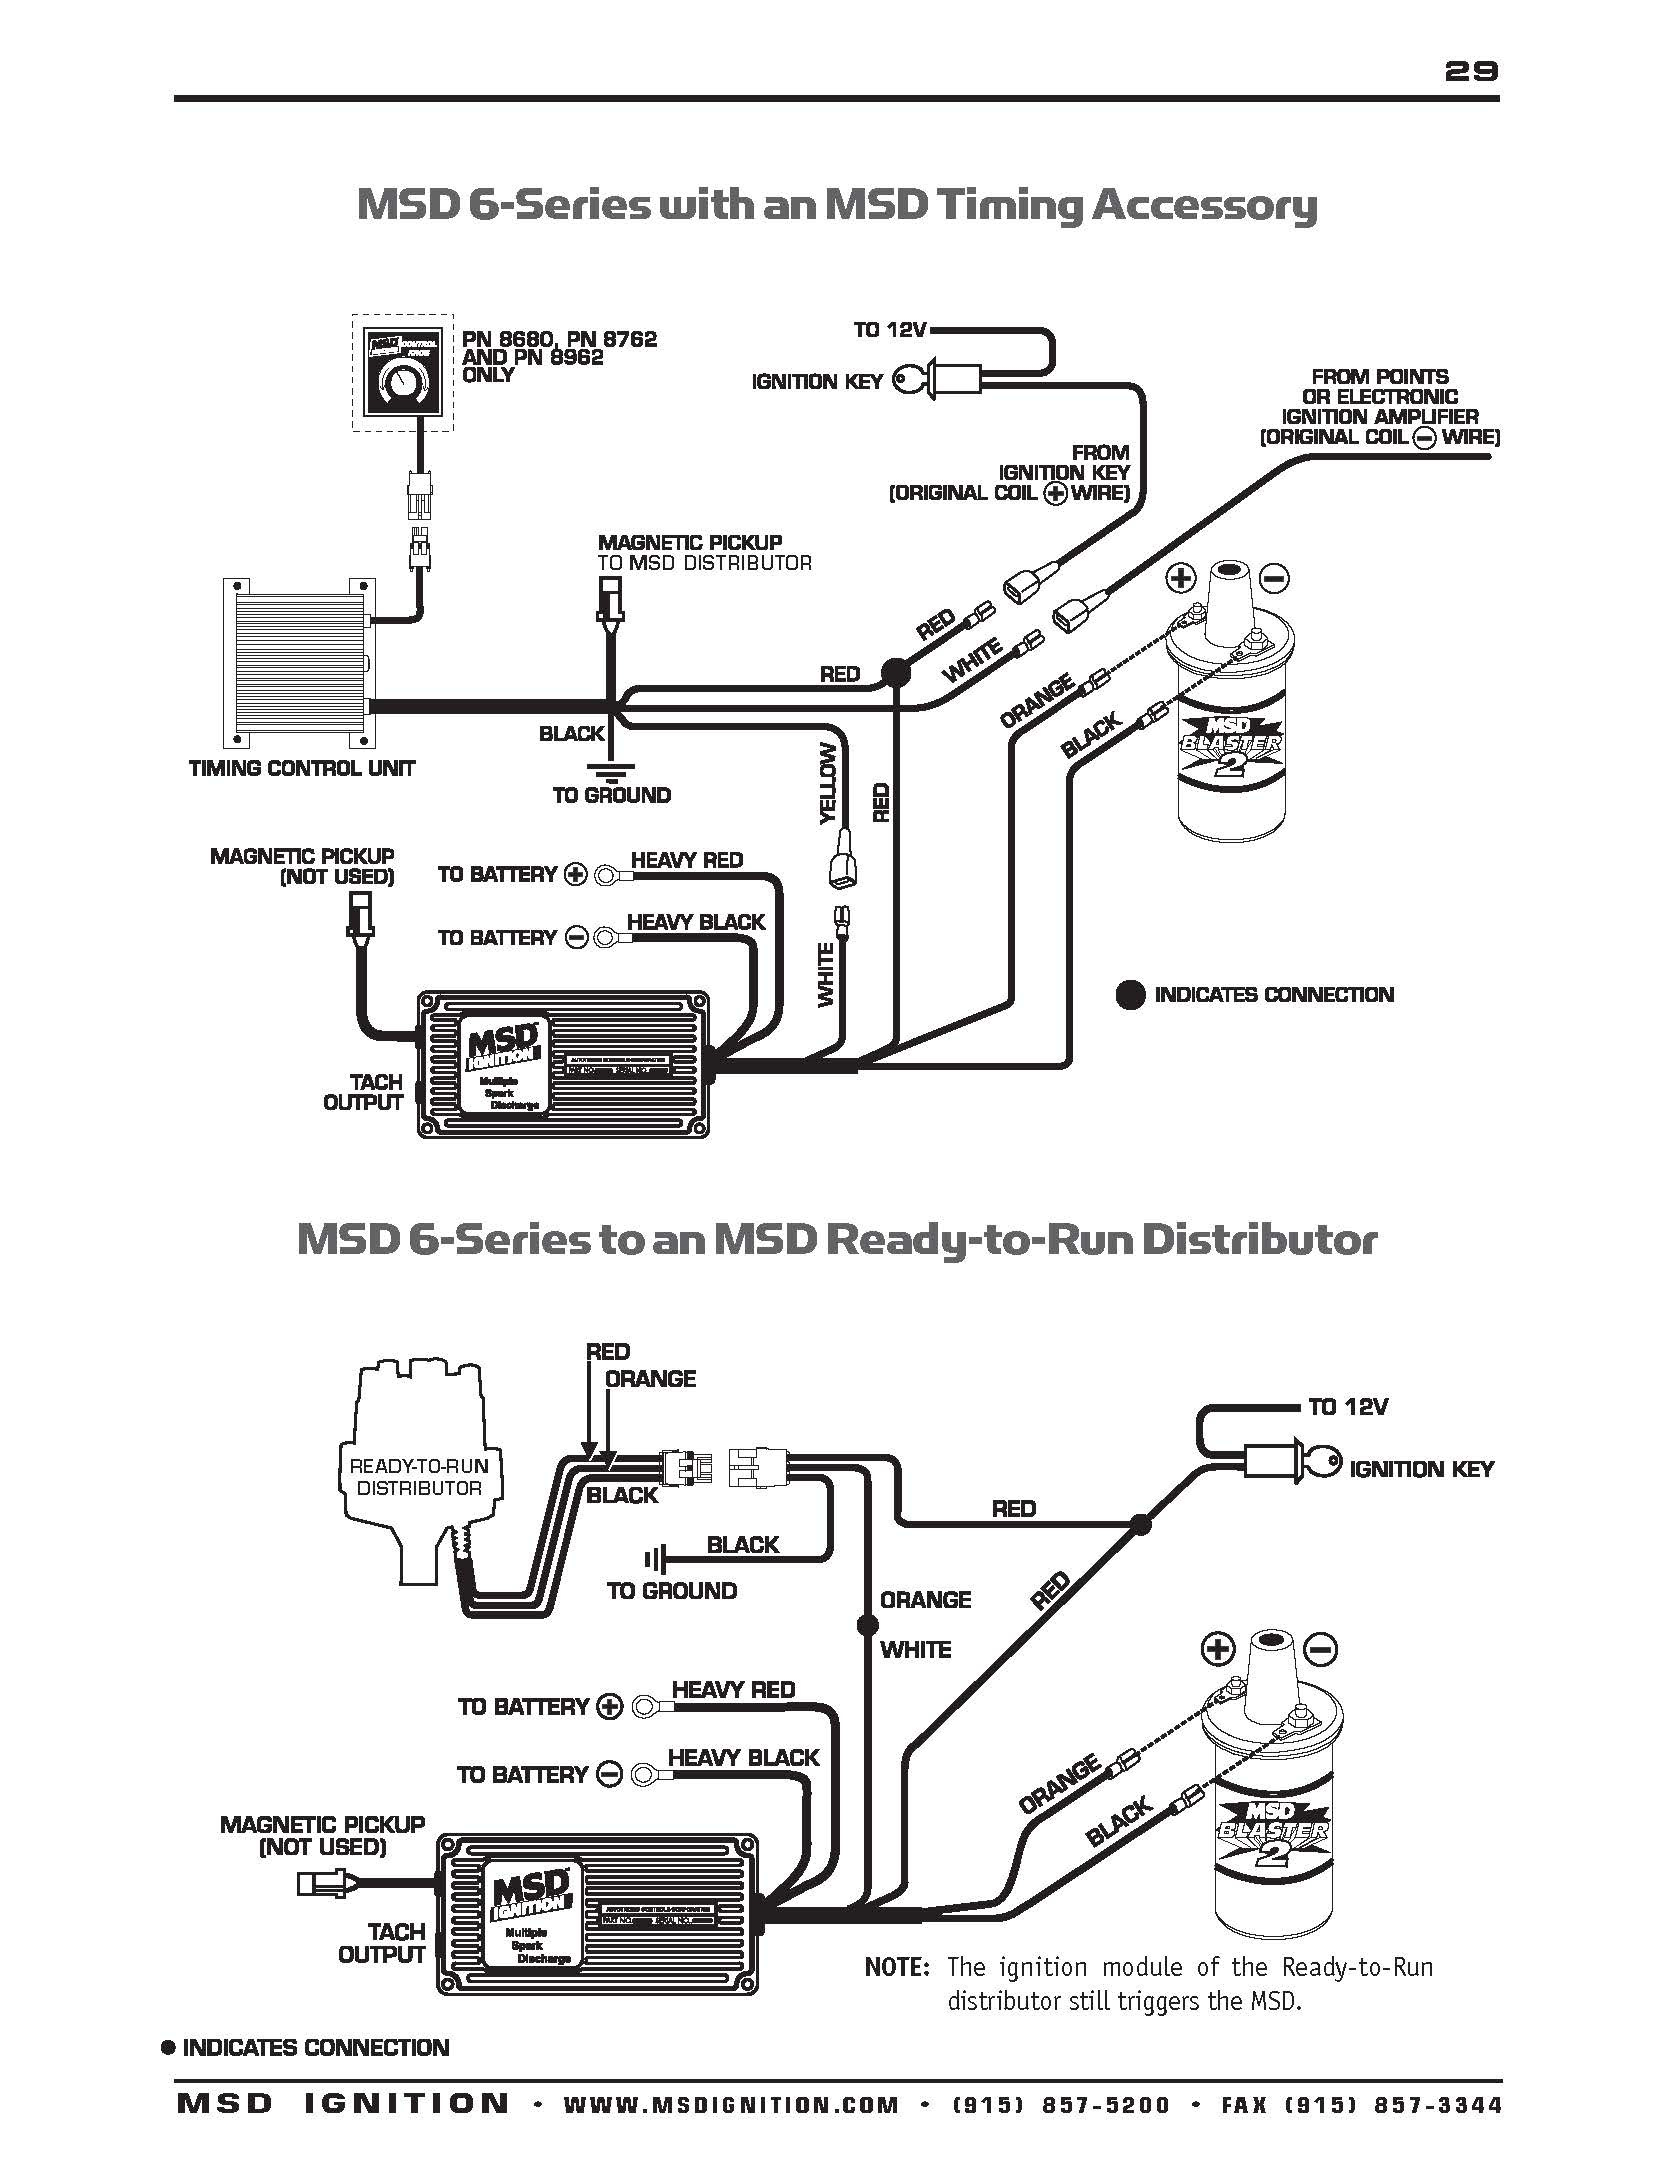 Msd Ignition Al Wiring Diagram Ford Ignition Control Module Wiring - Ford Ignition Control Module Wiring Diagram